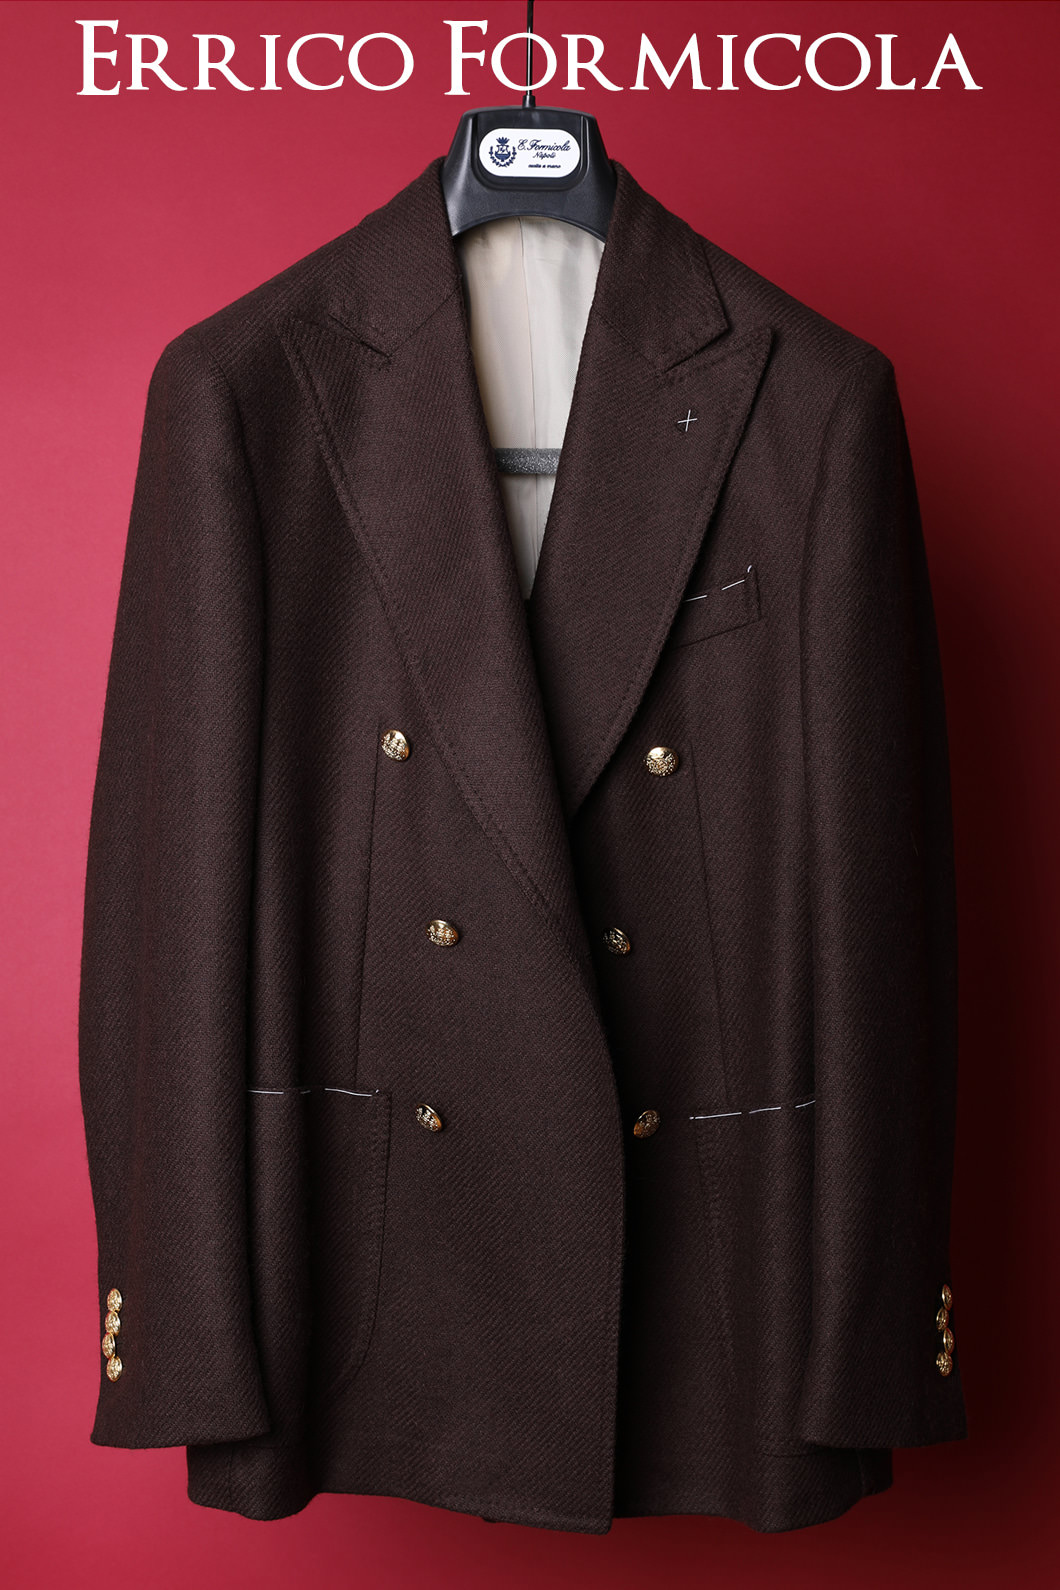 Errico Formicola Double JacketMade in ITALY